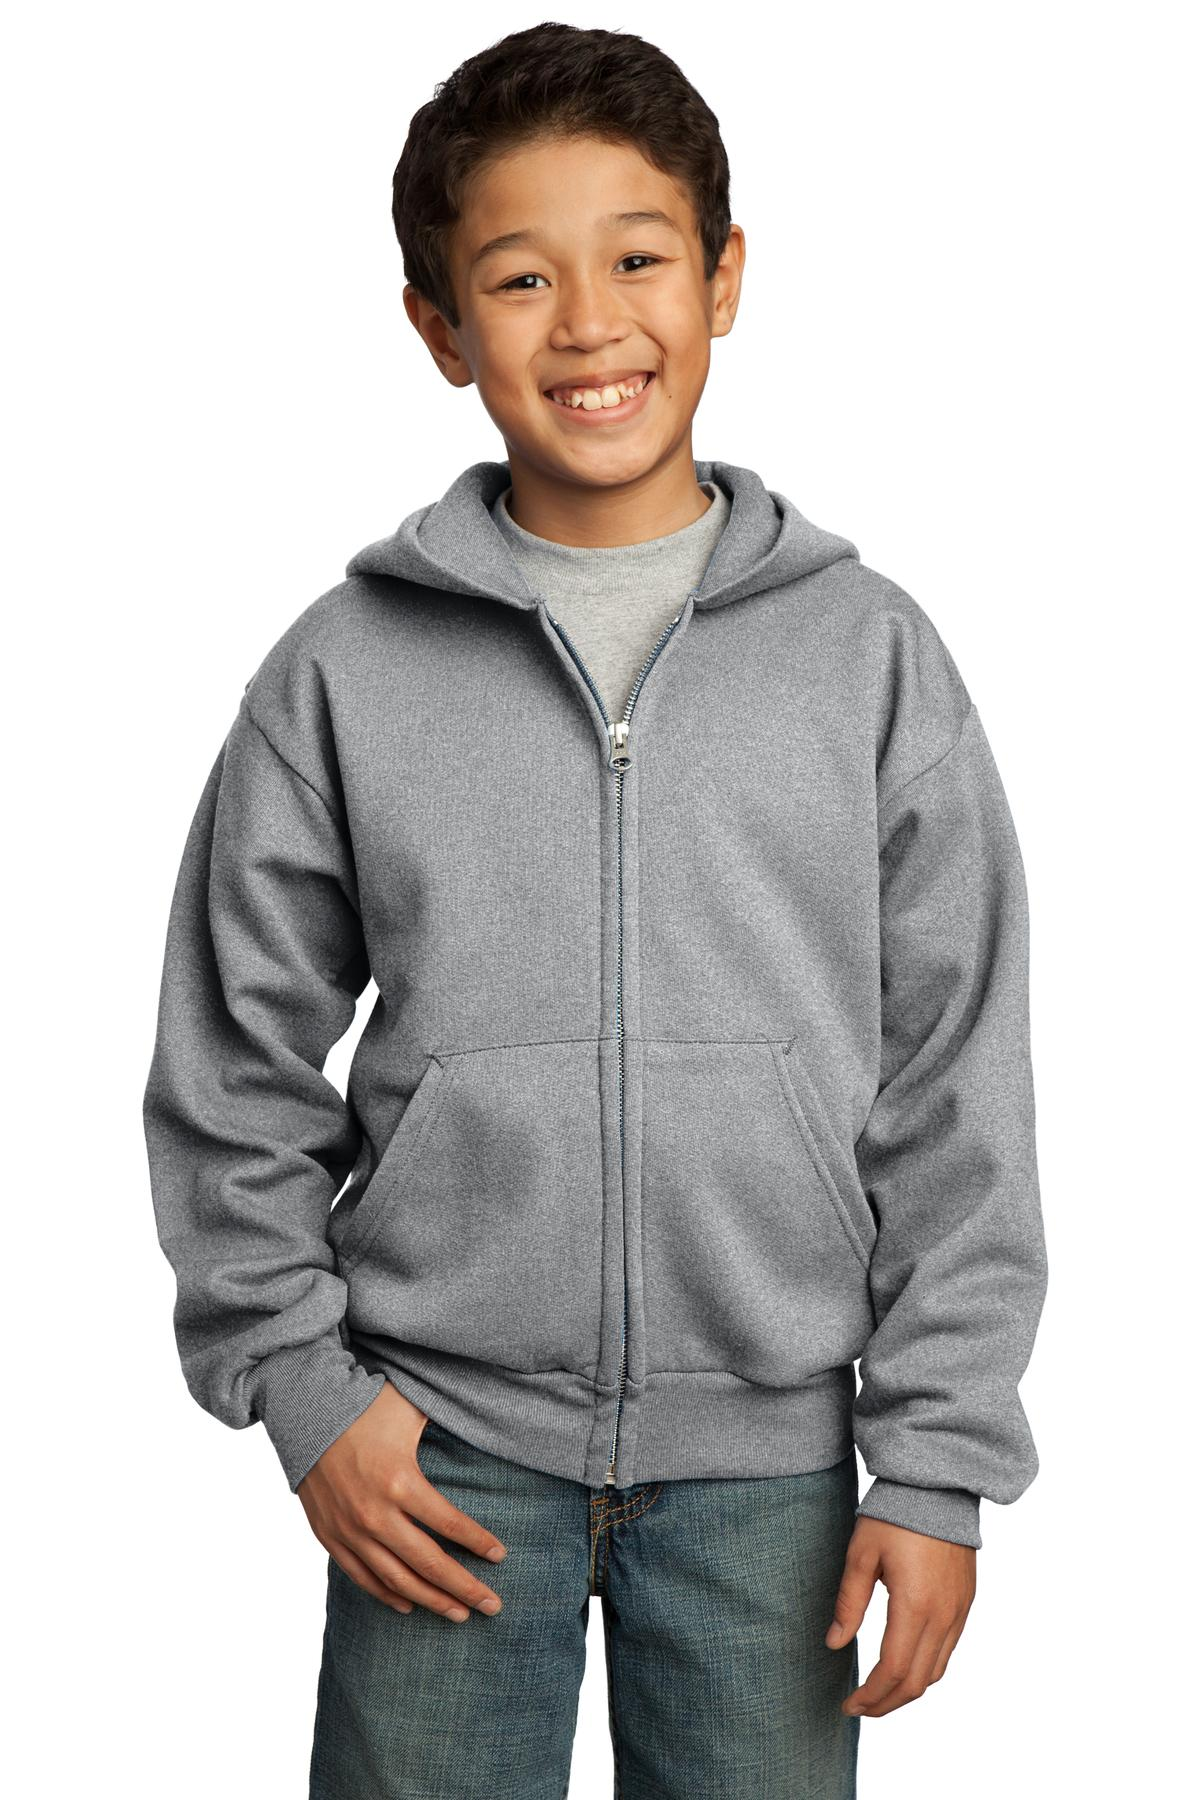 Port & Company ®  - Youth Core Fleece Full-Zip Hooded Sweatshirt.  PC90YZH - Athletic Heather